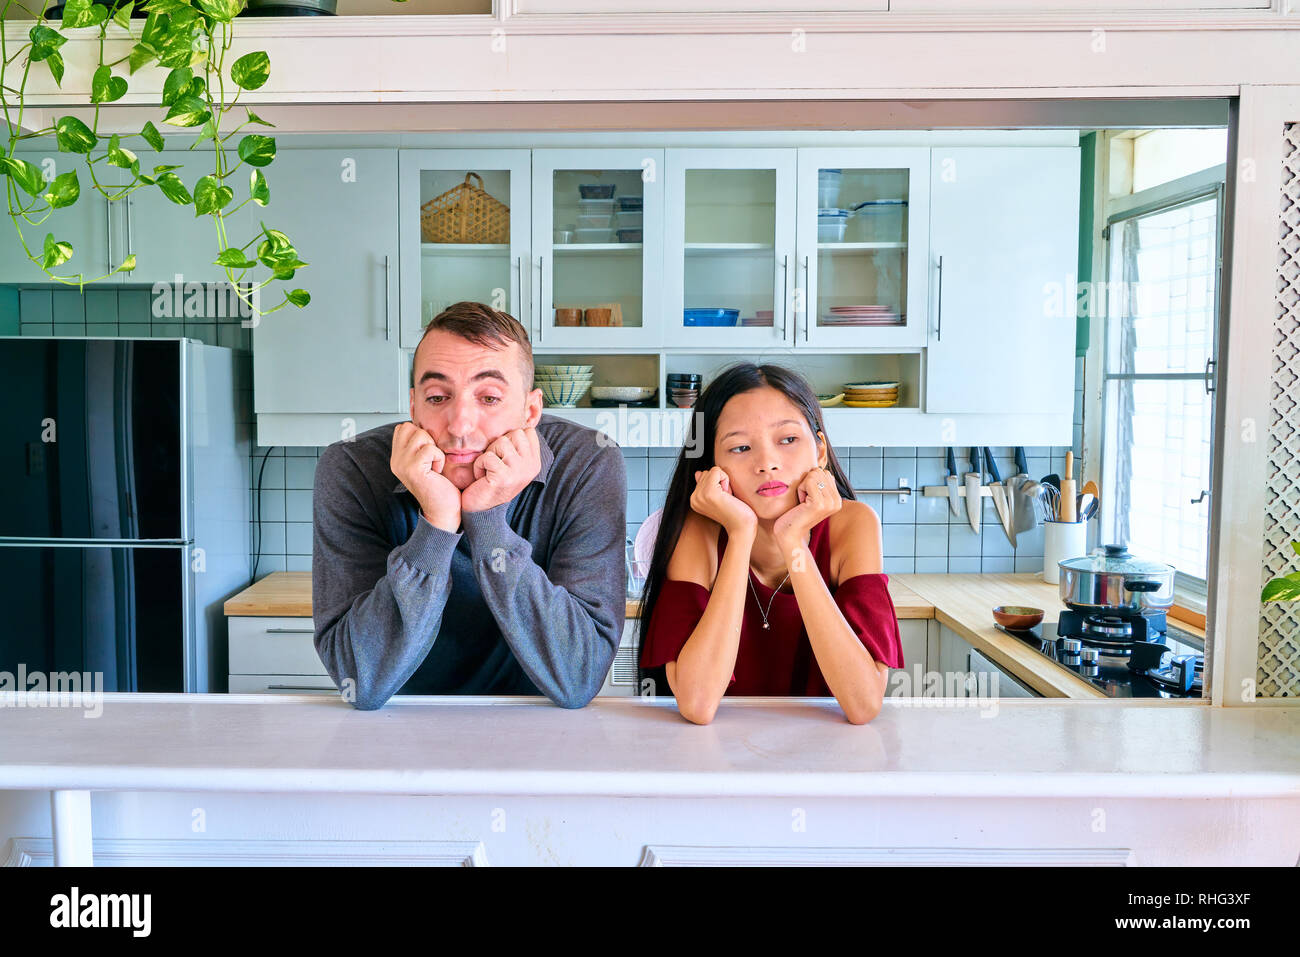 Lovely couple posing - bored and tired - Stock Image